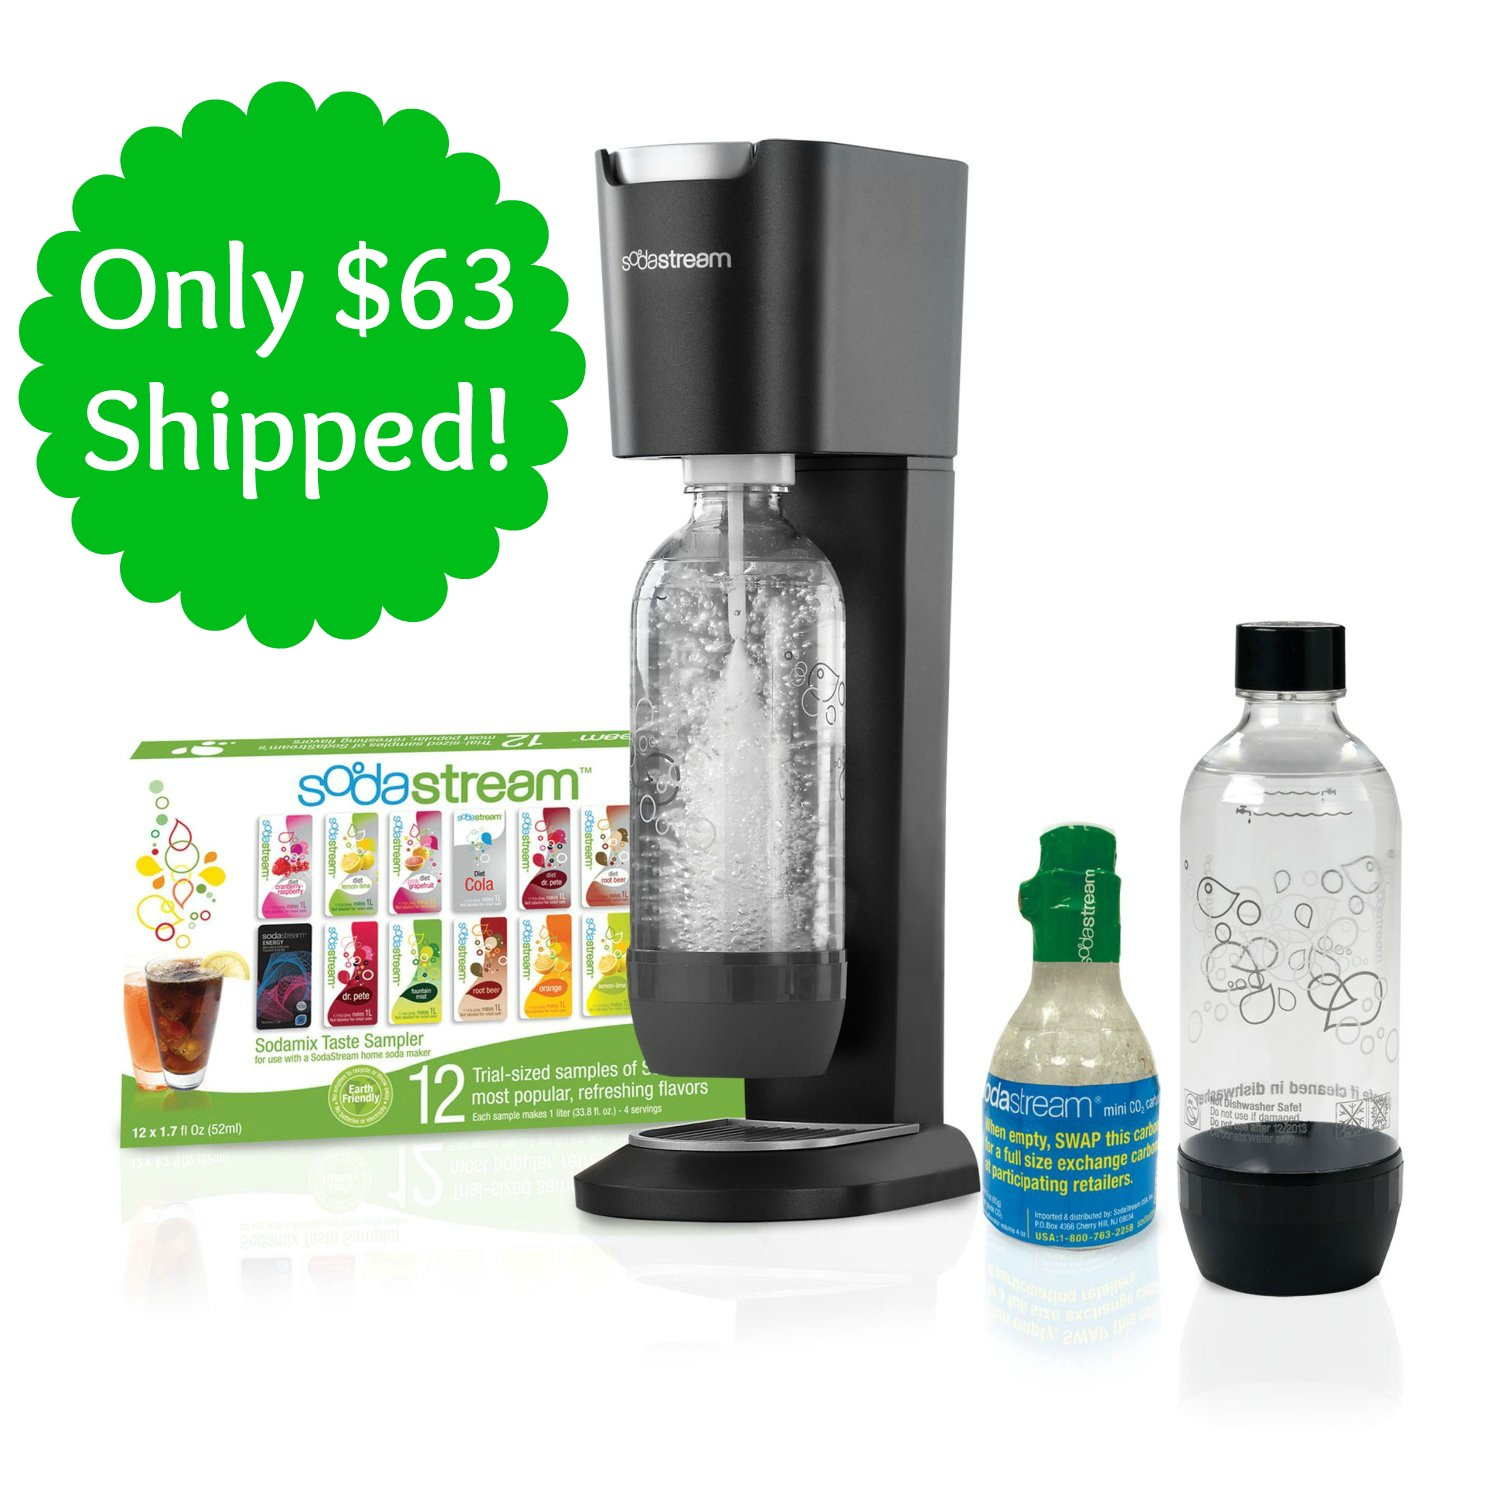 Soda stream coupon